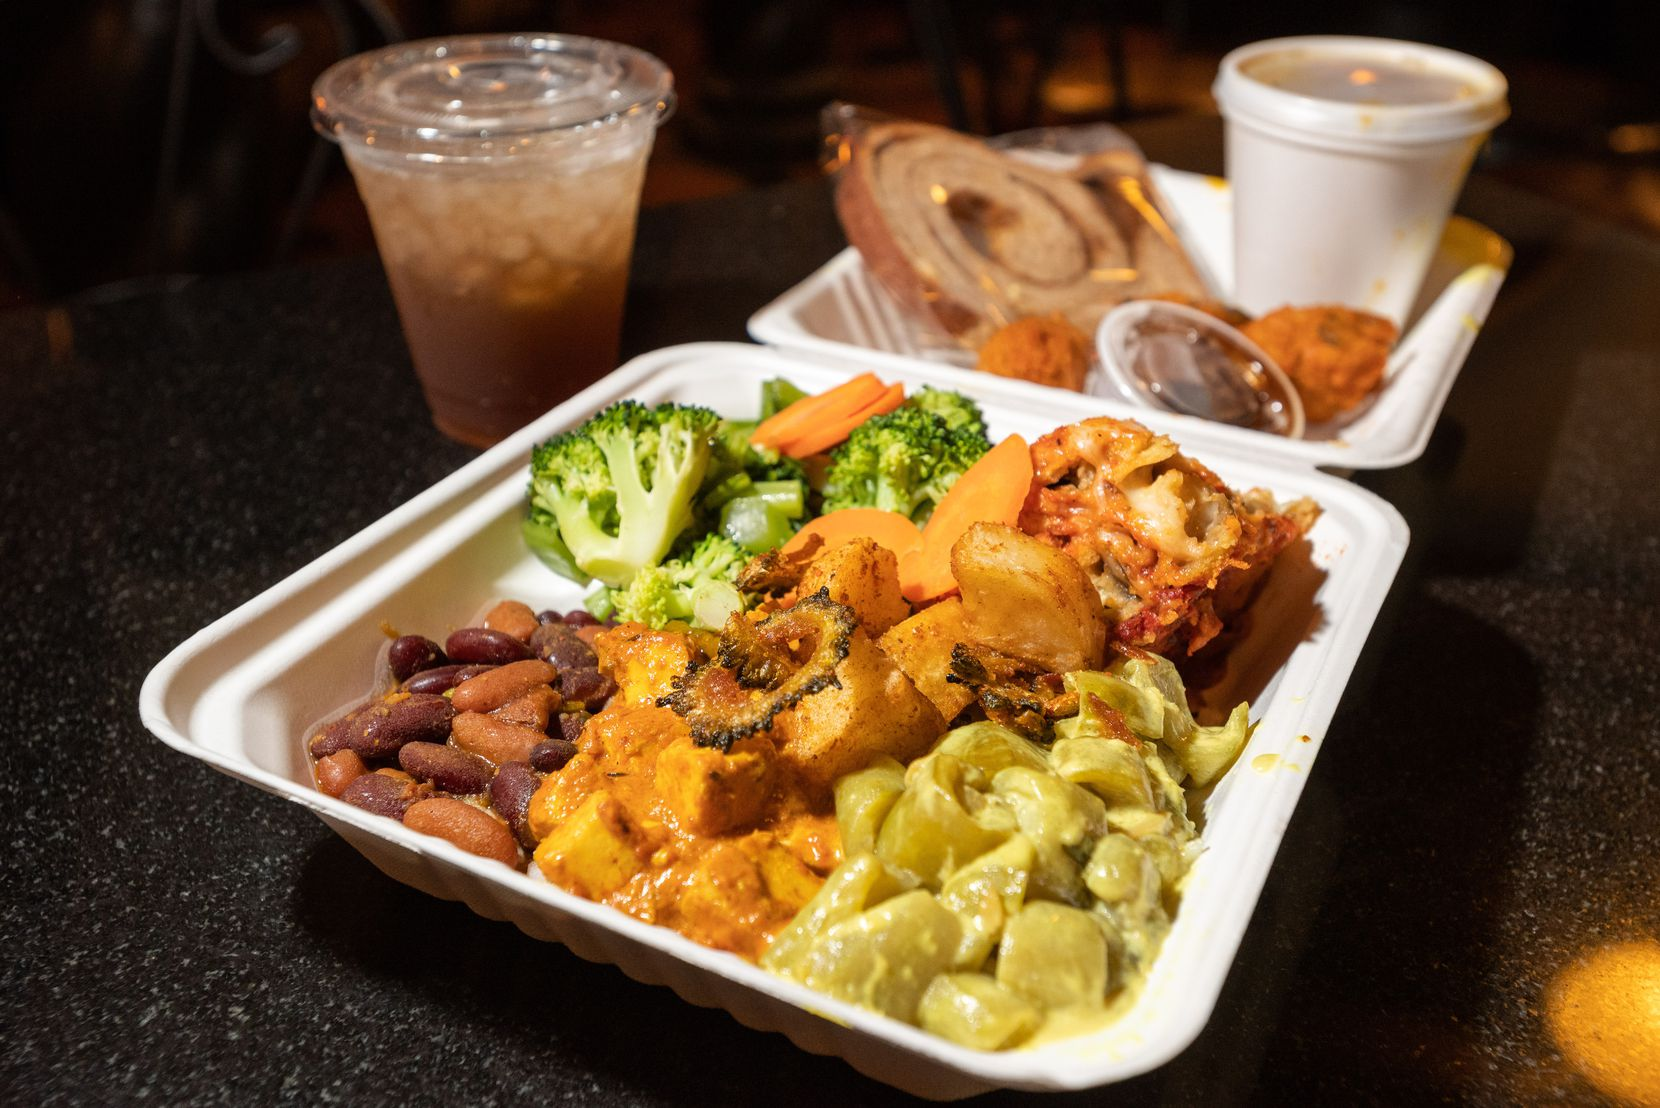 A food order of a variety vegetarian and vegan foods from Kalachandji's vegetarian restaurant on Gurley Avenue in east Dallas, on Saturday, Aug. 28, 2021. Kalachandji's is one of Dallas' last buffets.